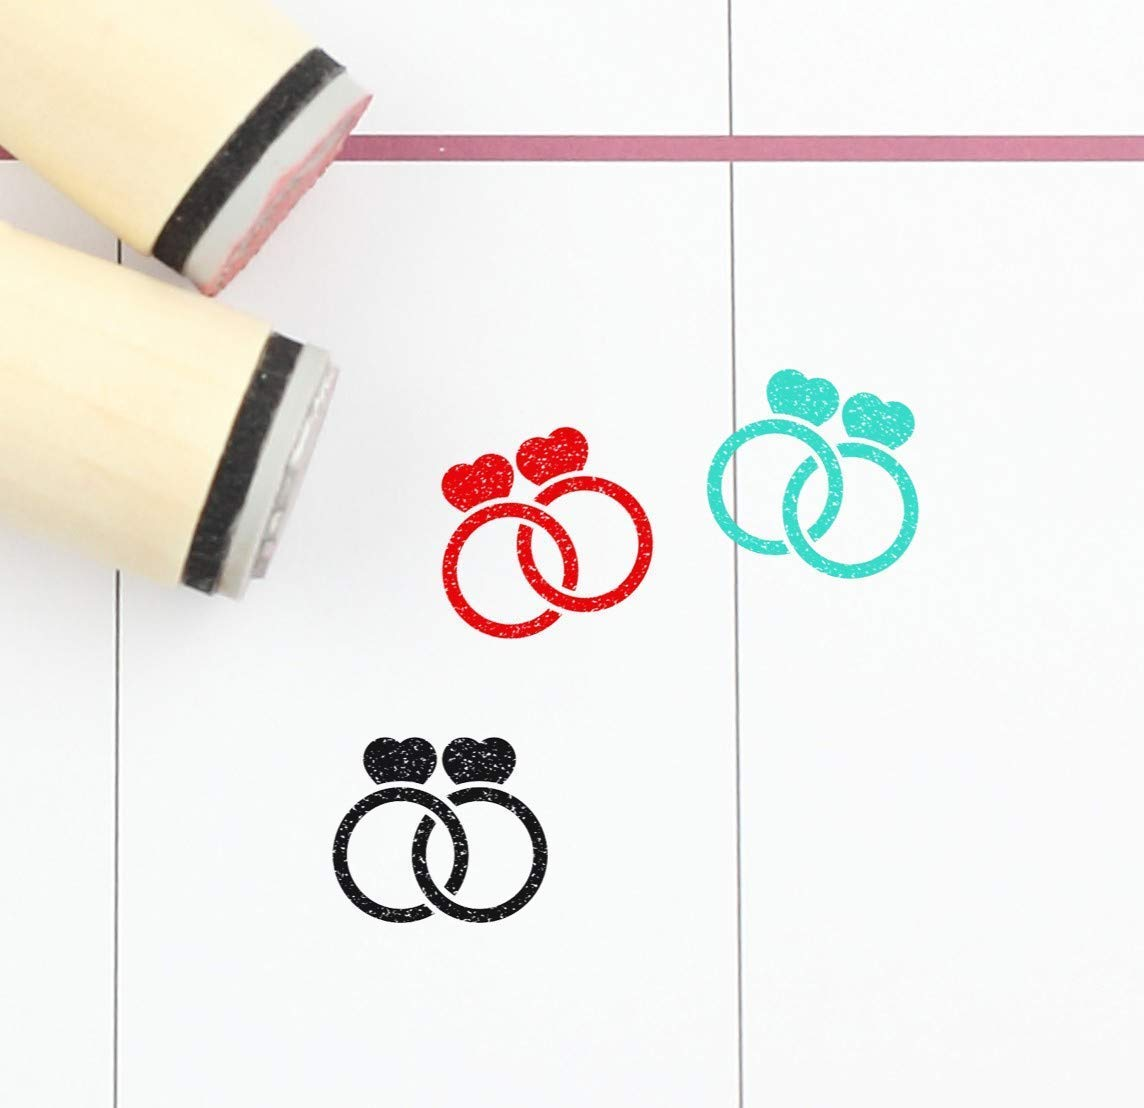 S335 Engagement ring Stamp Rings Rubber Stamp 16mm 20mm Mini Stamps Wedding Ring Stamp Planner Stamp